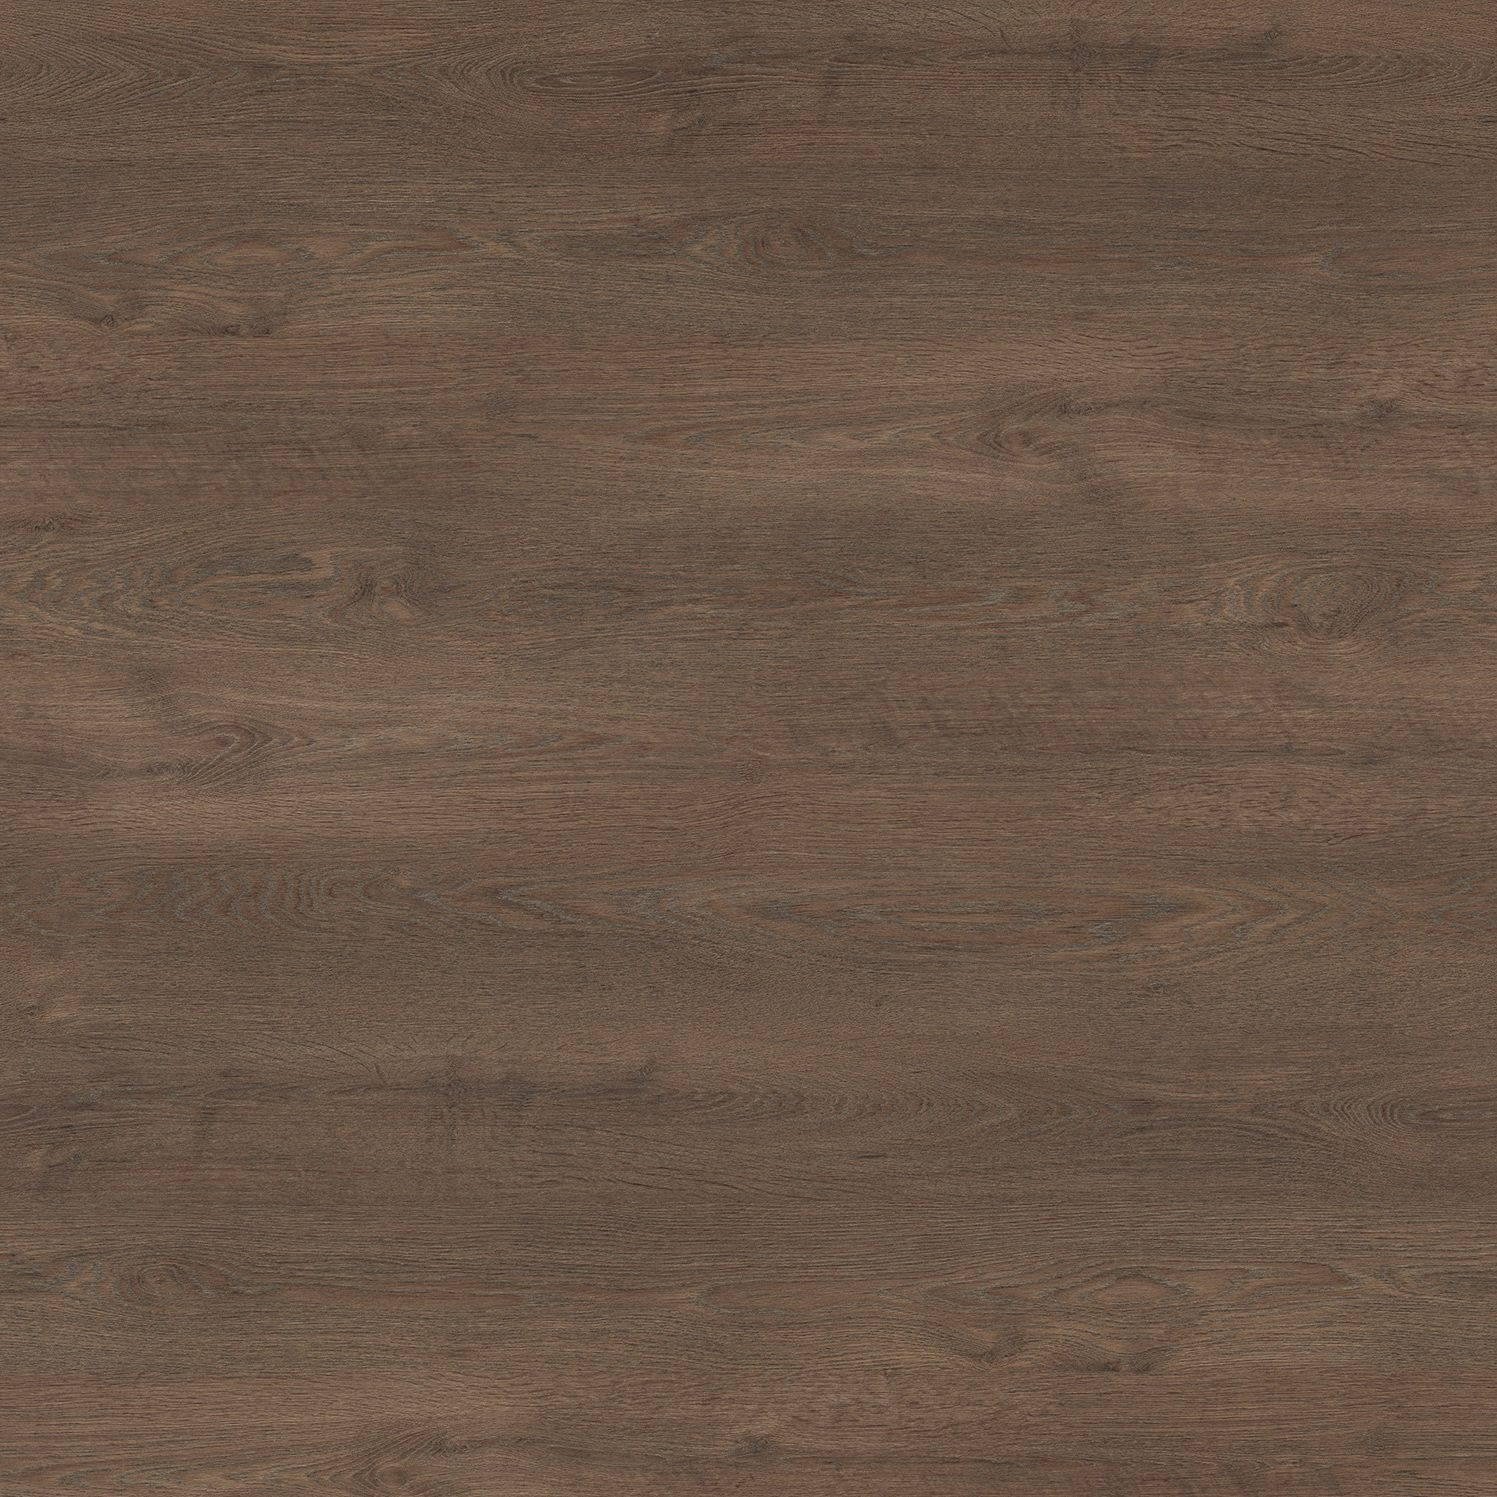 Wood Look Decorative Laminate Textured Hpl Brown Stickley Oak 17003